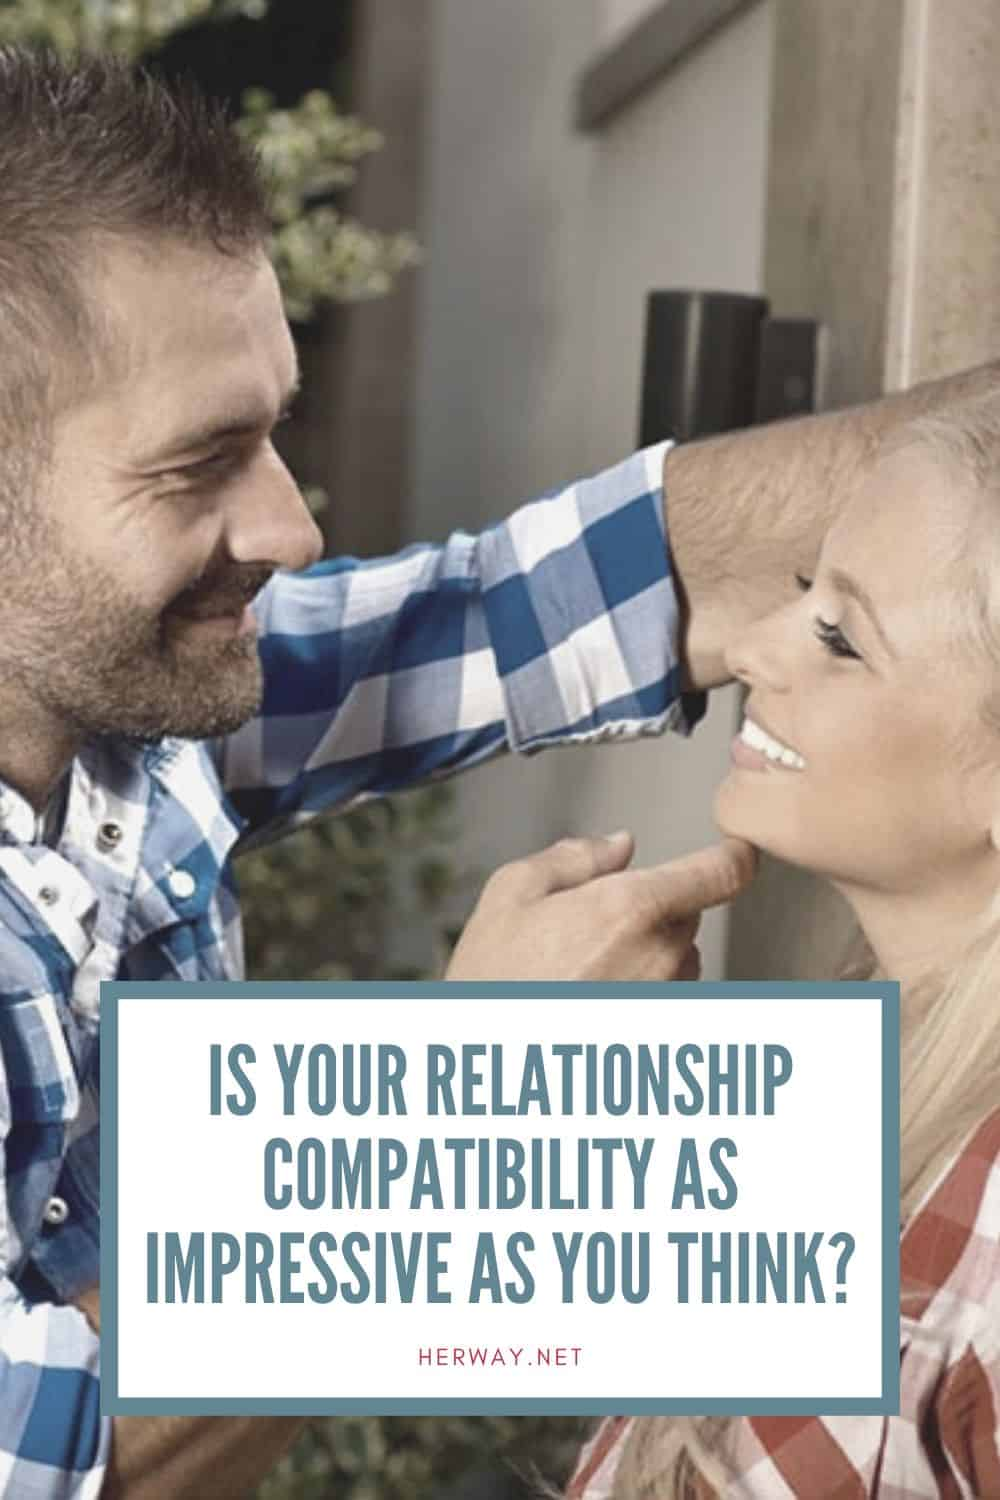 IS YOUR RELATIONSHIP COMPATIBILITY AS IMPRESSIVE AS YOU THINK?